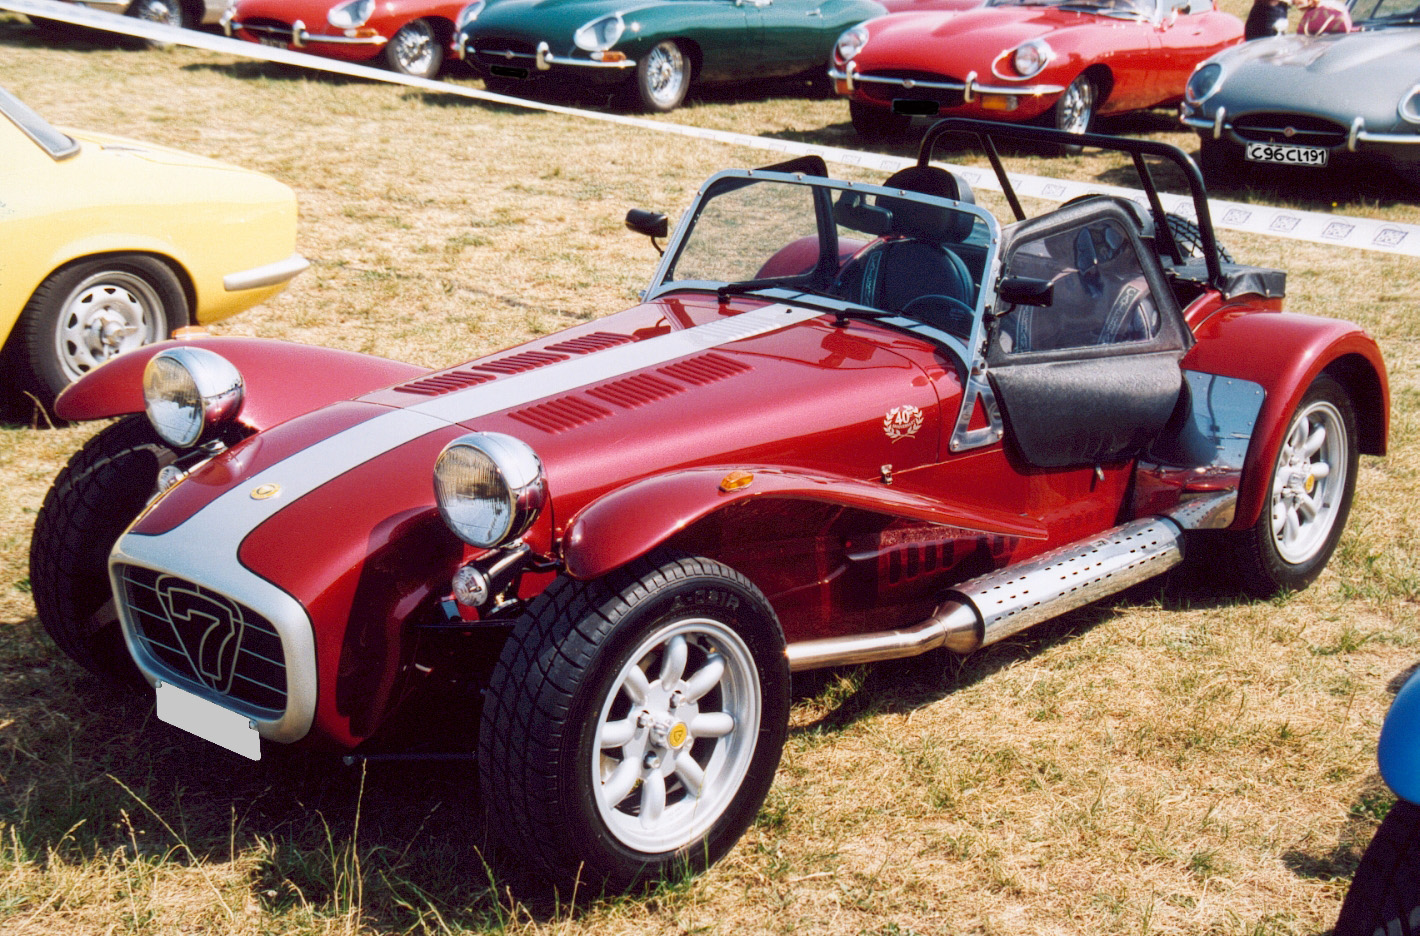 File:1997 Caterham Seven.jpg - Wikimedia Commons